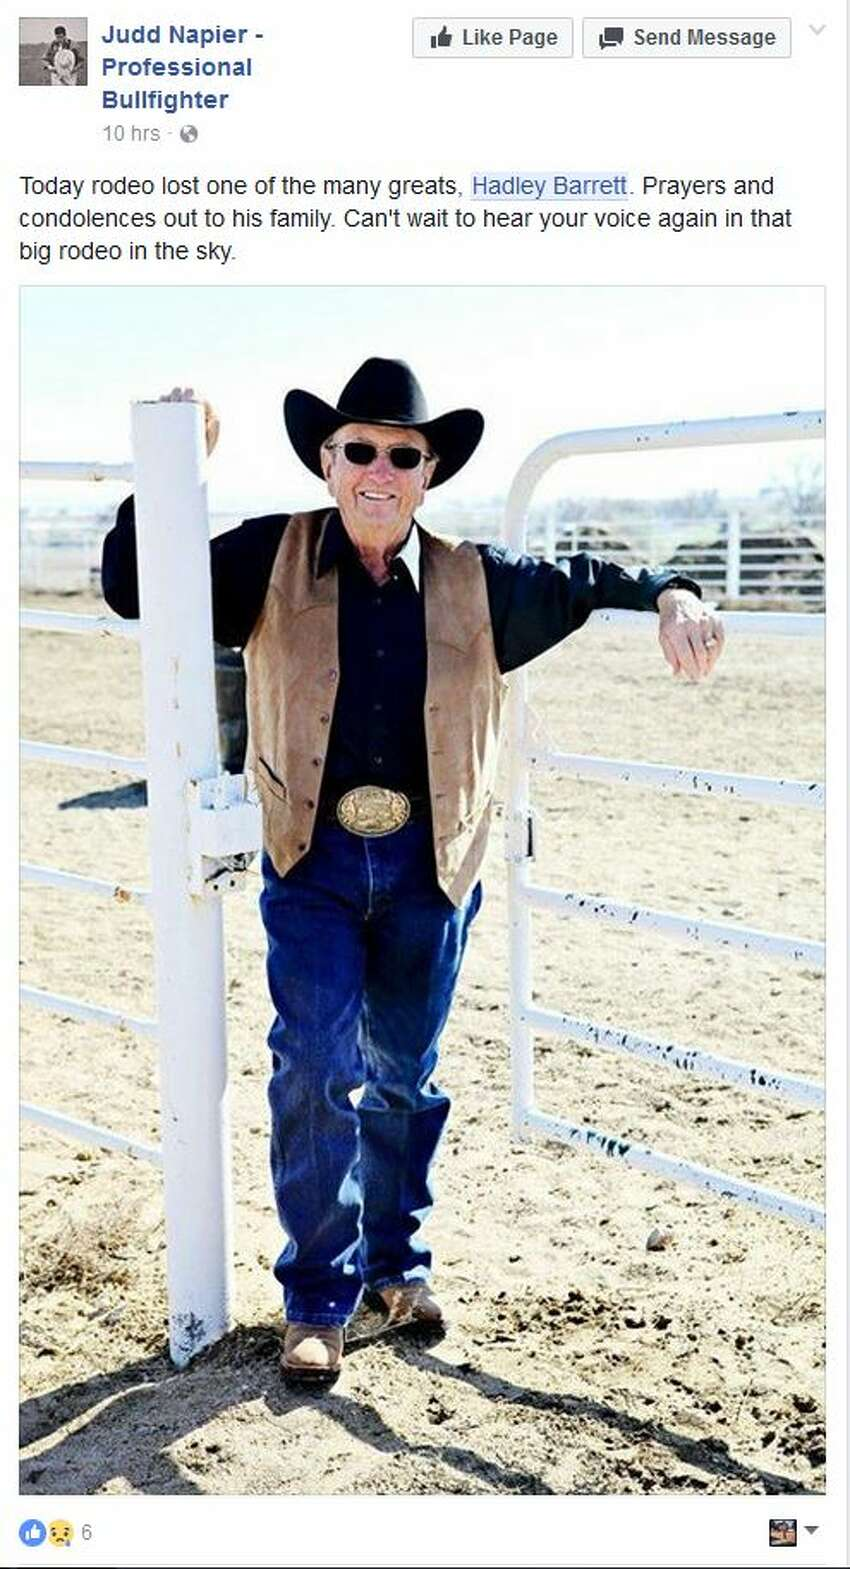 Today rodeo lost one of the many greats, Hadley Barrett. Prayers and condolences out to his family. Can't wait to hear your voice again in that big rodeo in the sky.